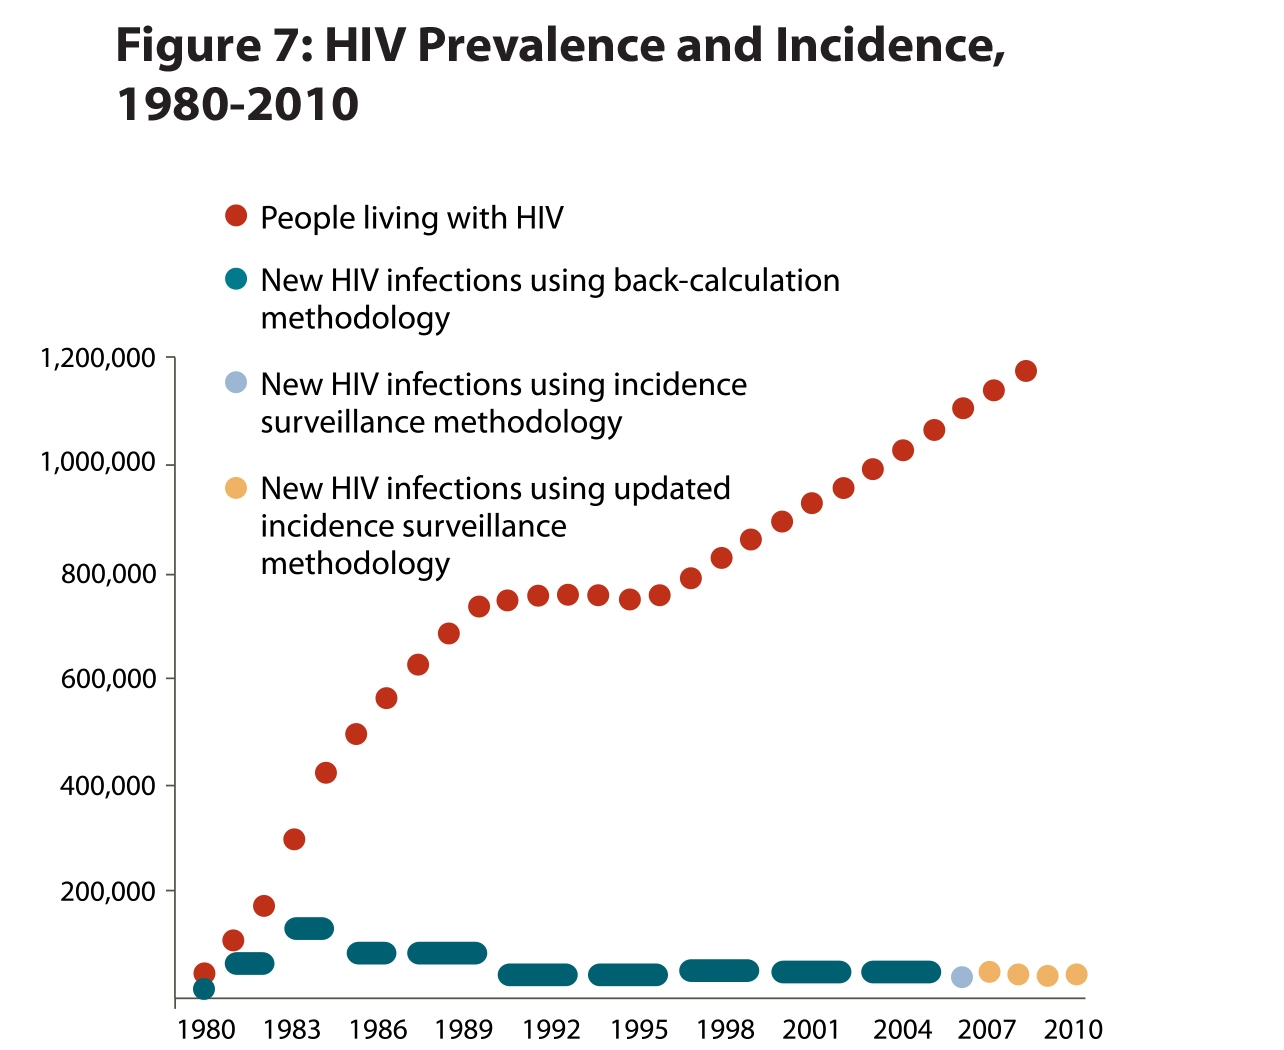 HIV and AIDS incidence from 1980 to 2010